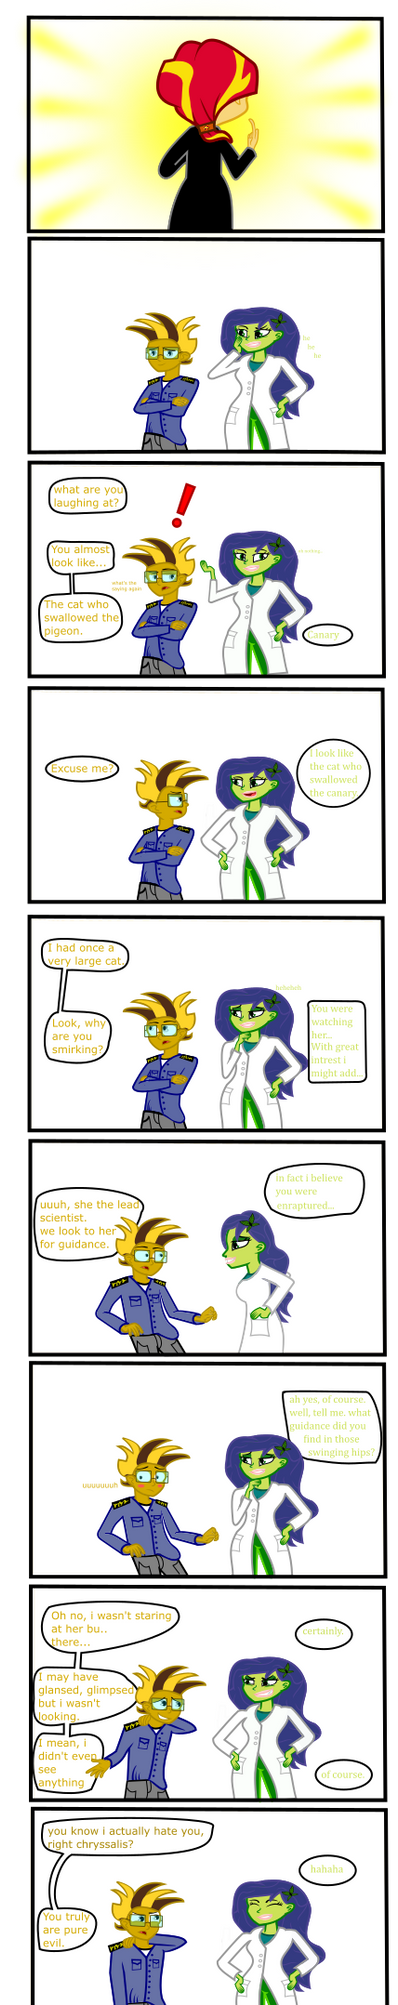 Sunset's undertale: shipping joke by Robbedhondt